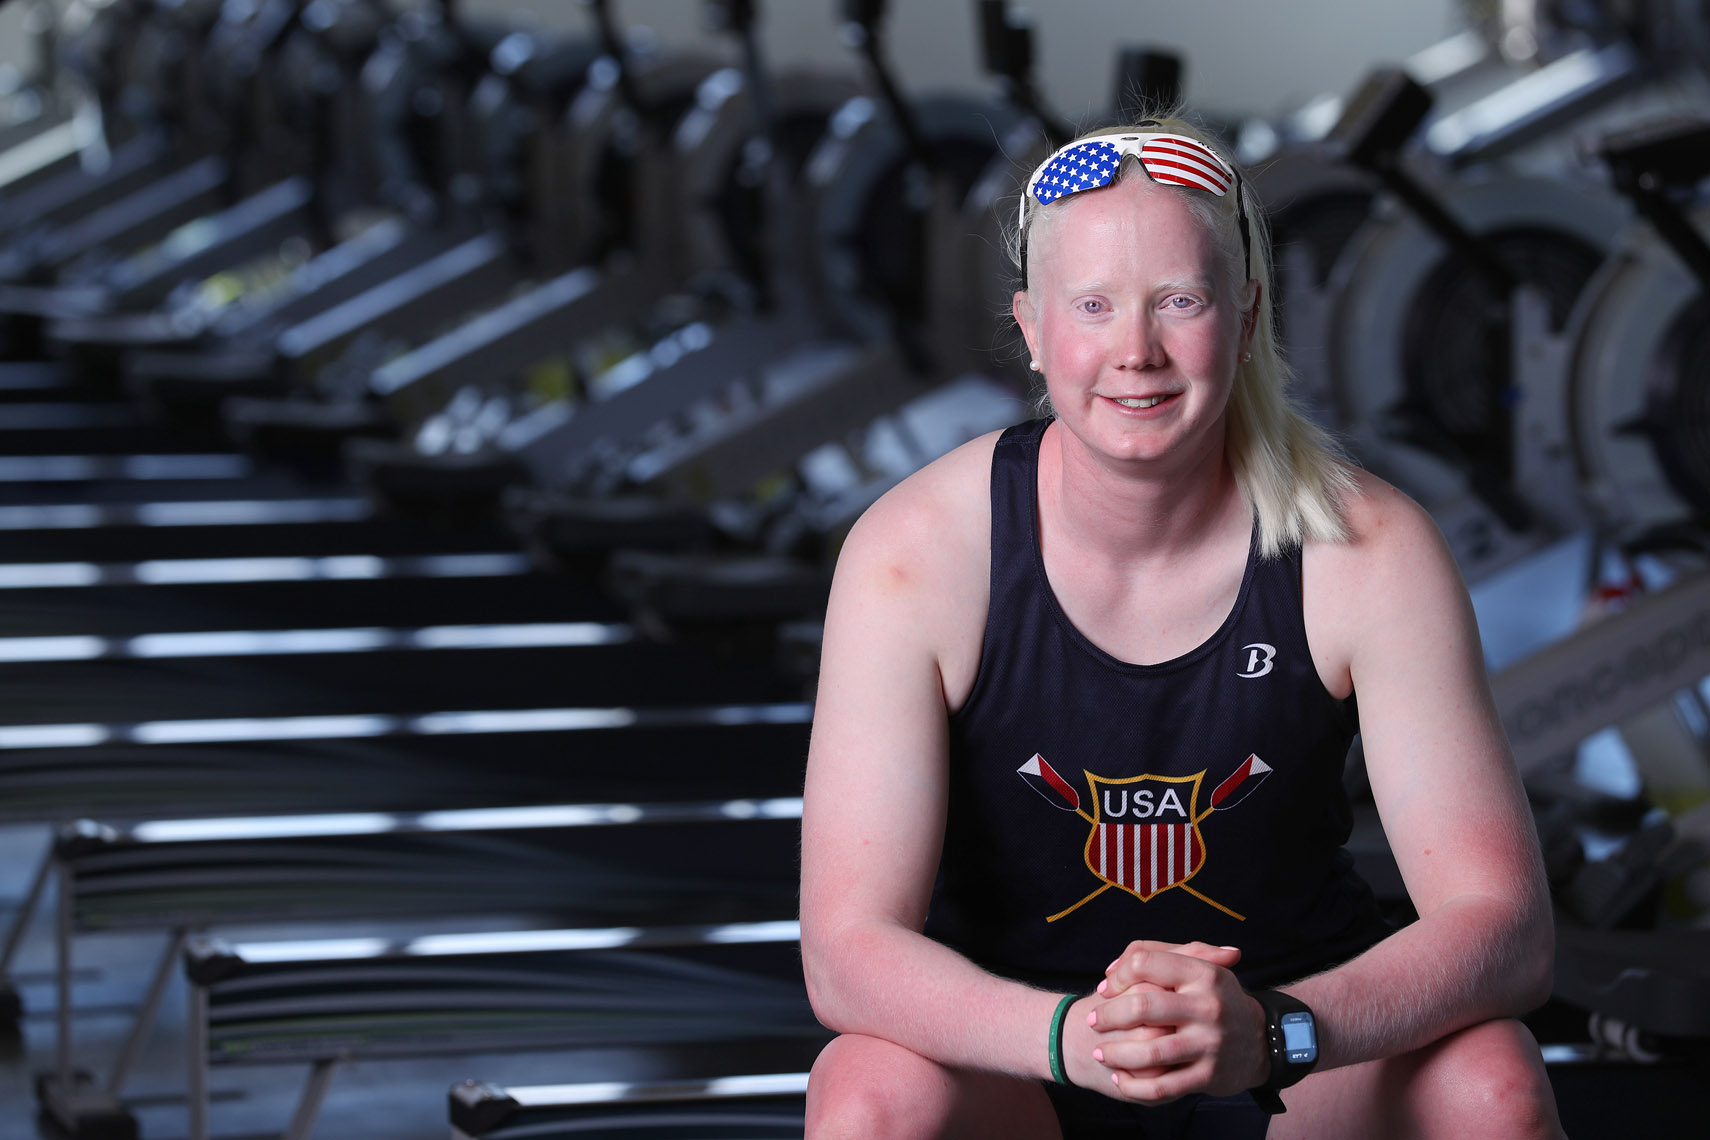 Olympic para rower Jaclyn Smith poses for a portrait in a workout room at Community Rowing.